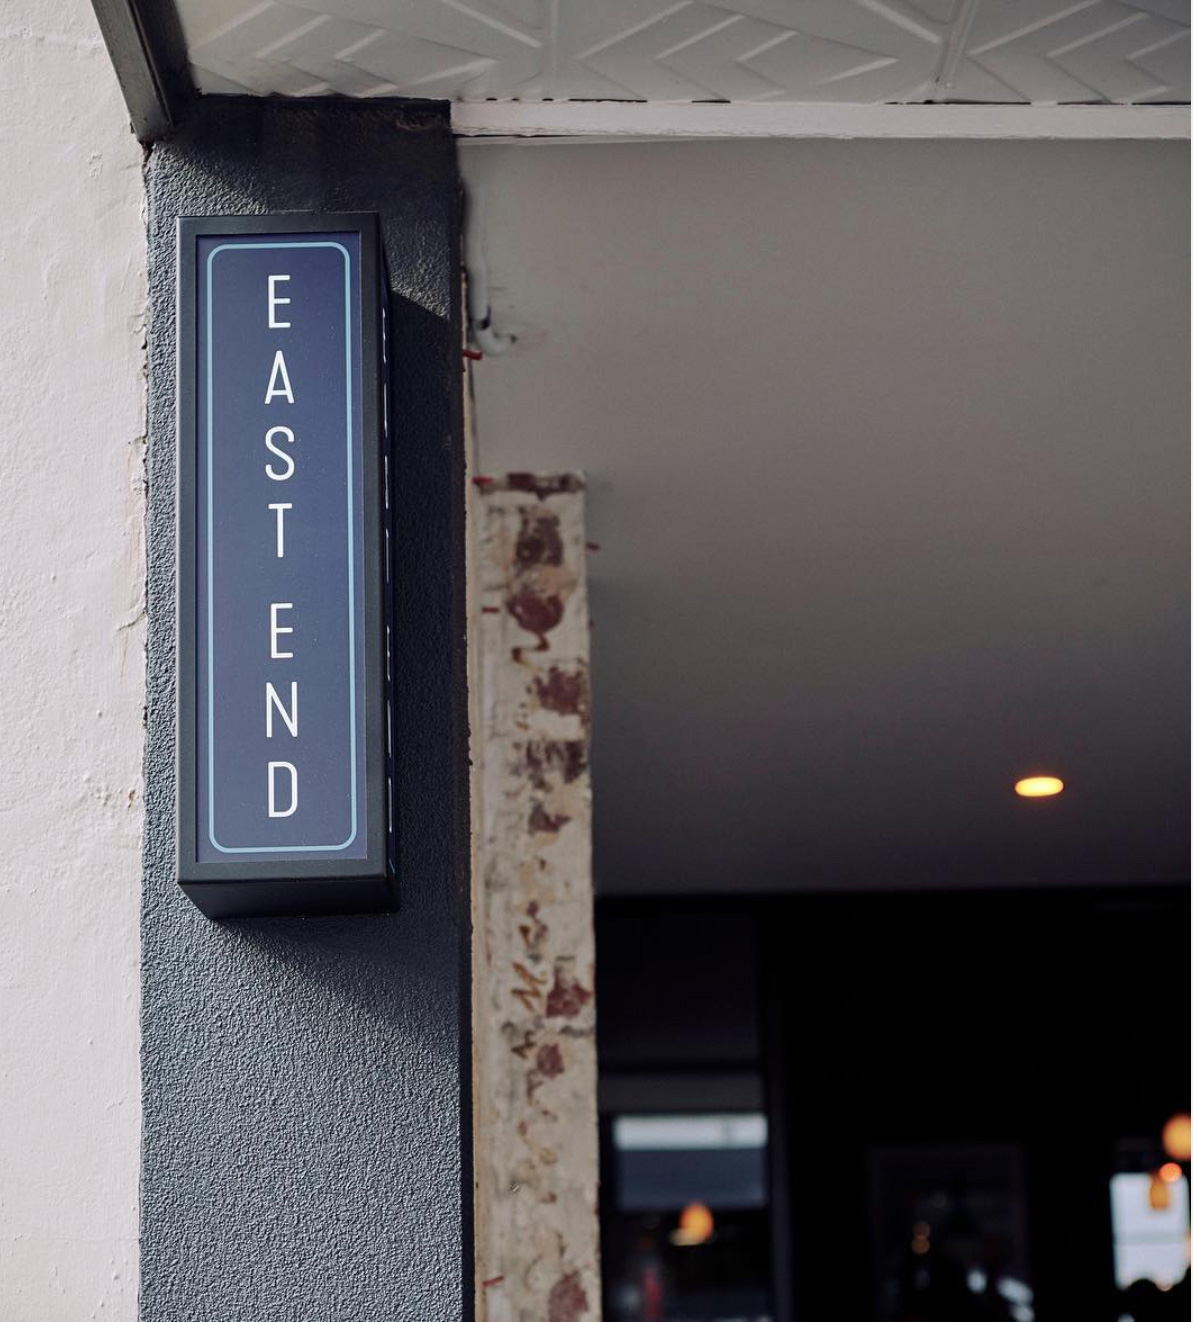 East End Wine Bar Branding, signage, design by Studio Mimi Moon MAX GAWN OWNER